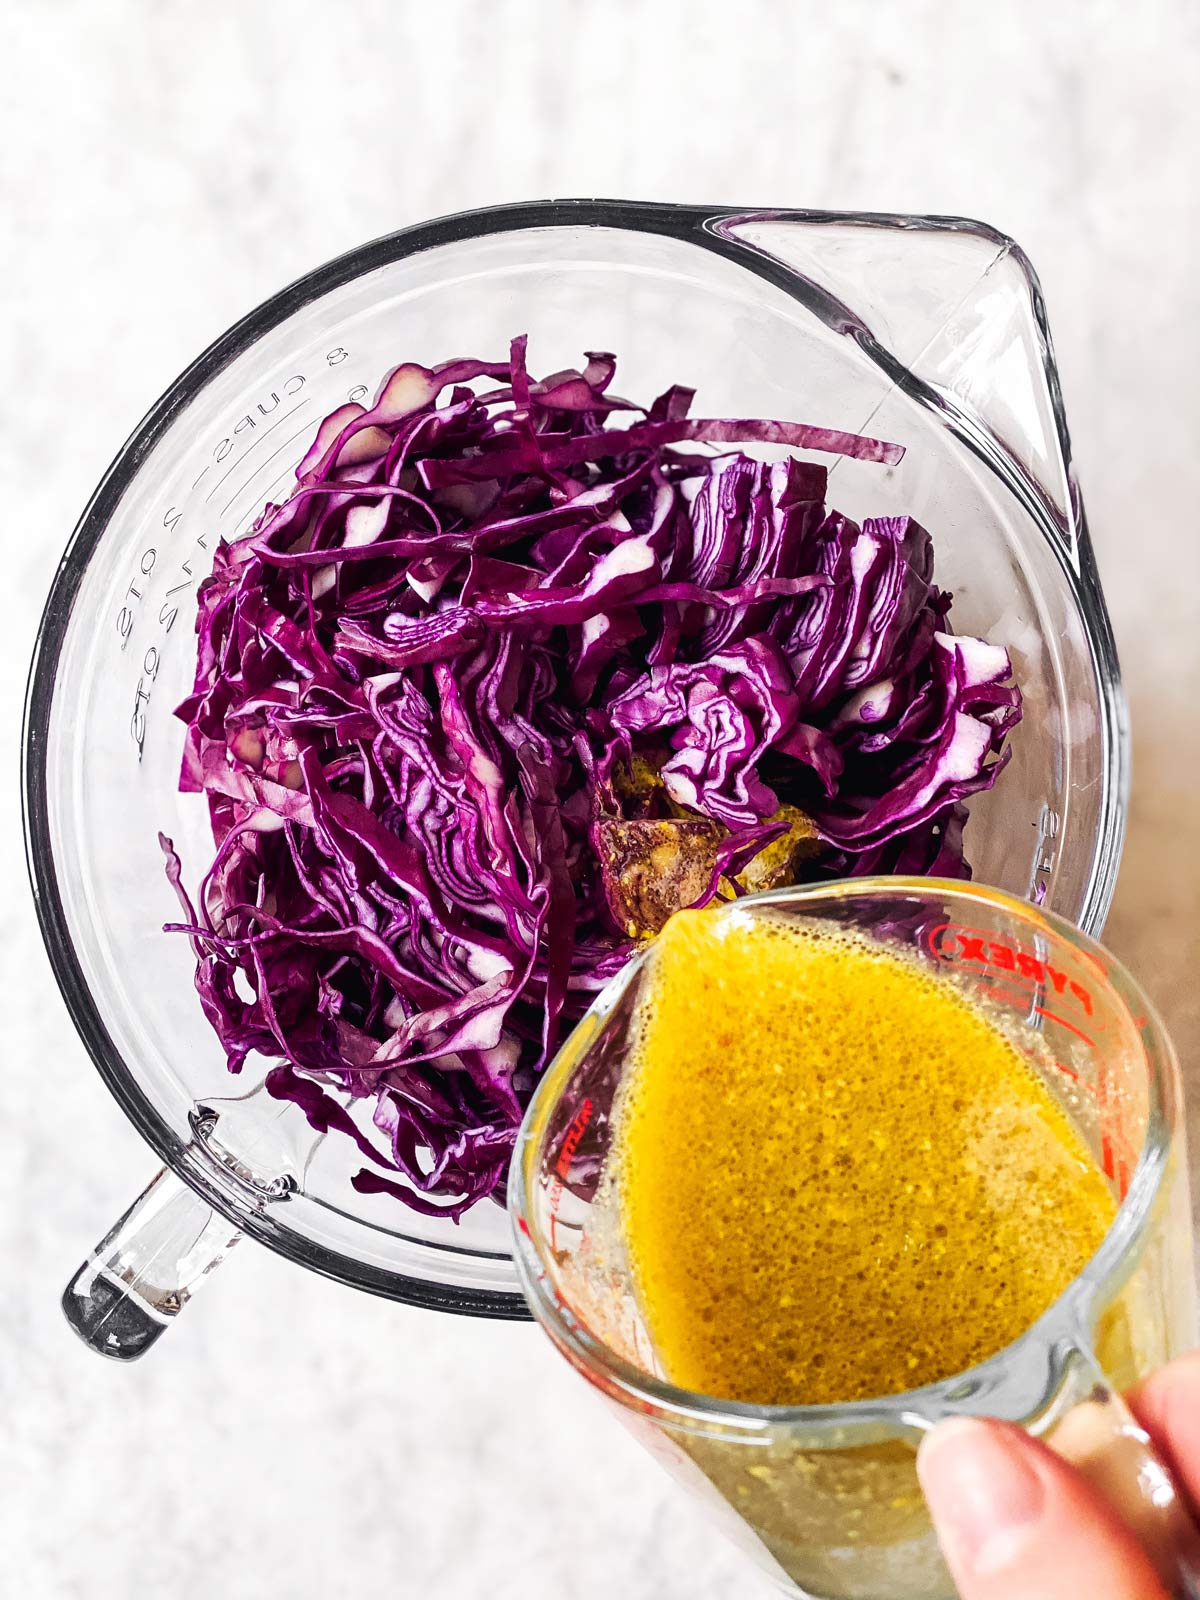 pouring dressing over shredded red cabbage in glass bowl